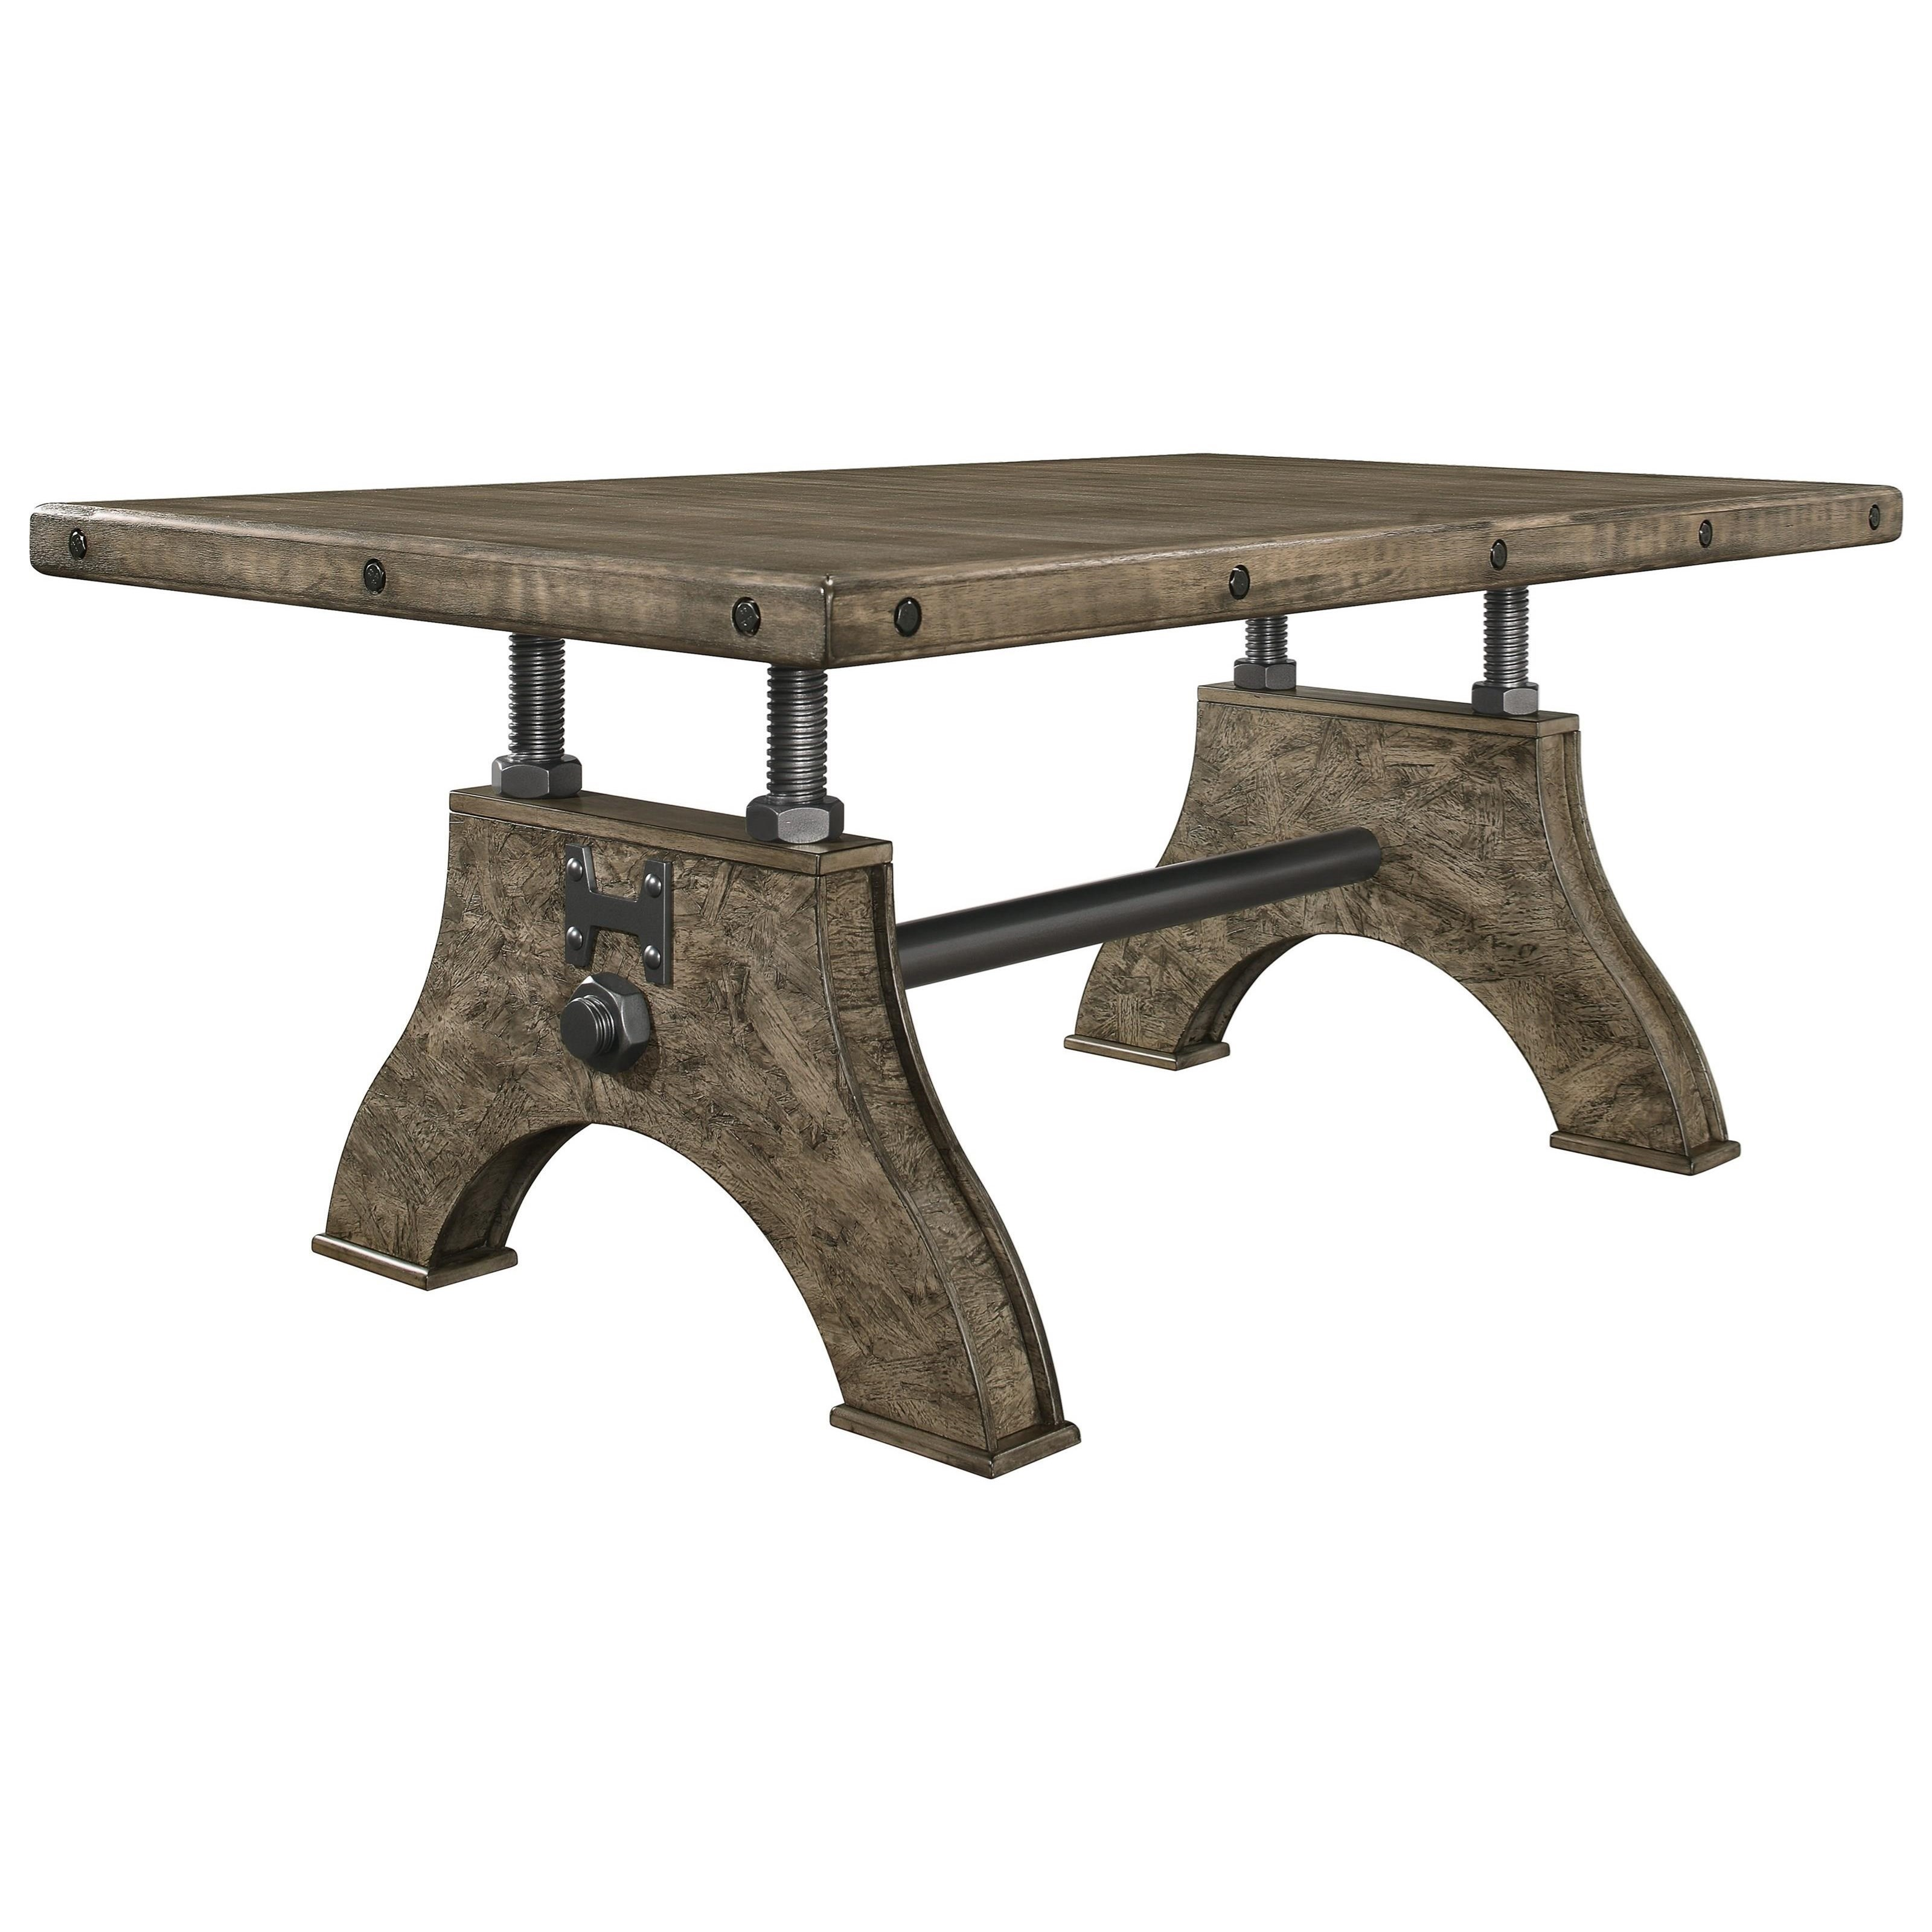 Work Bench Style Dining Table